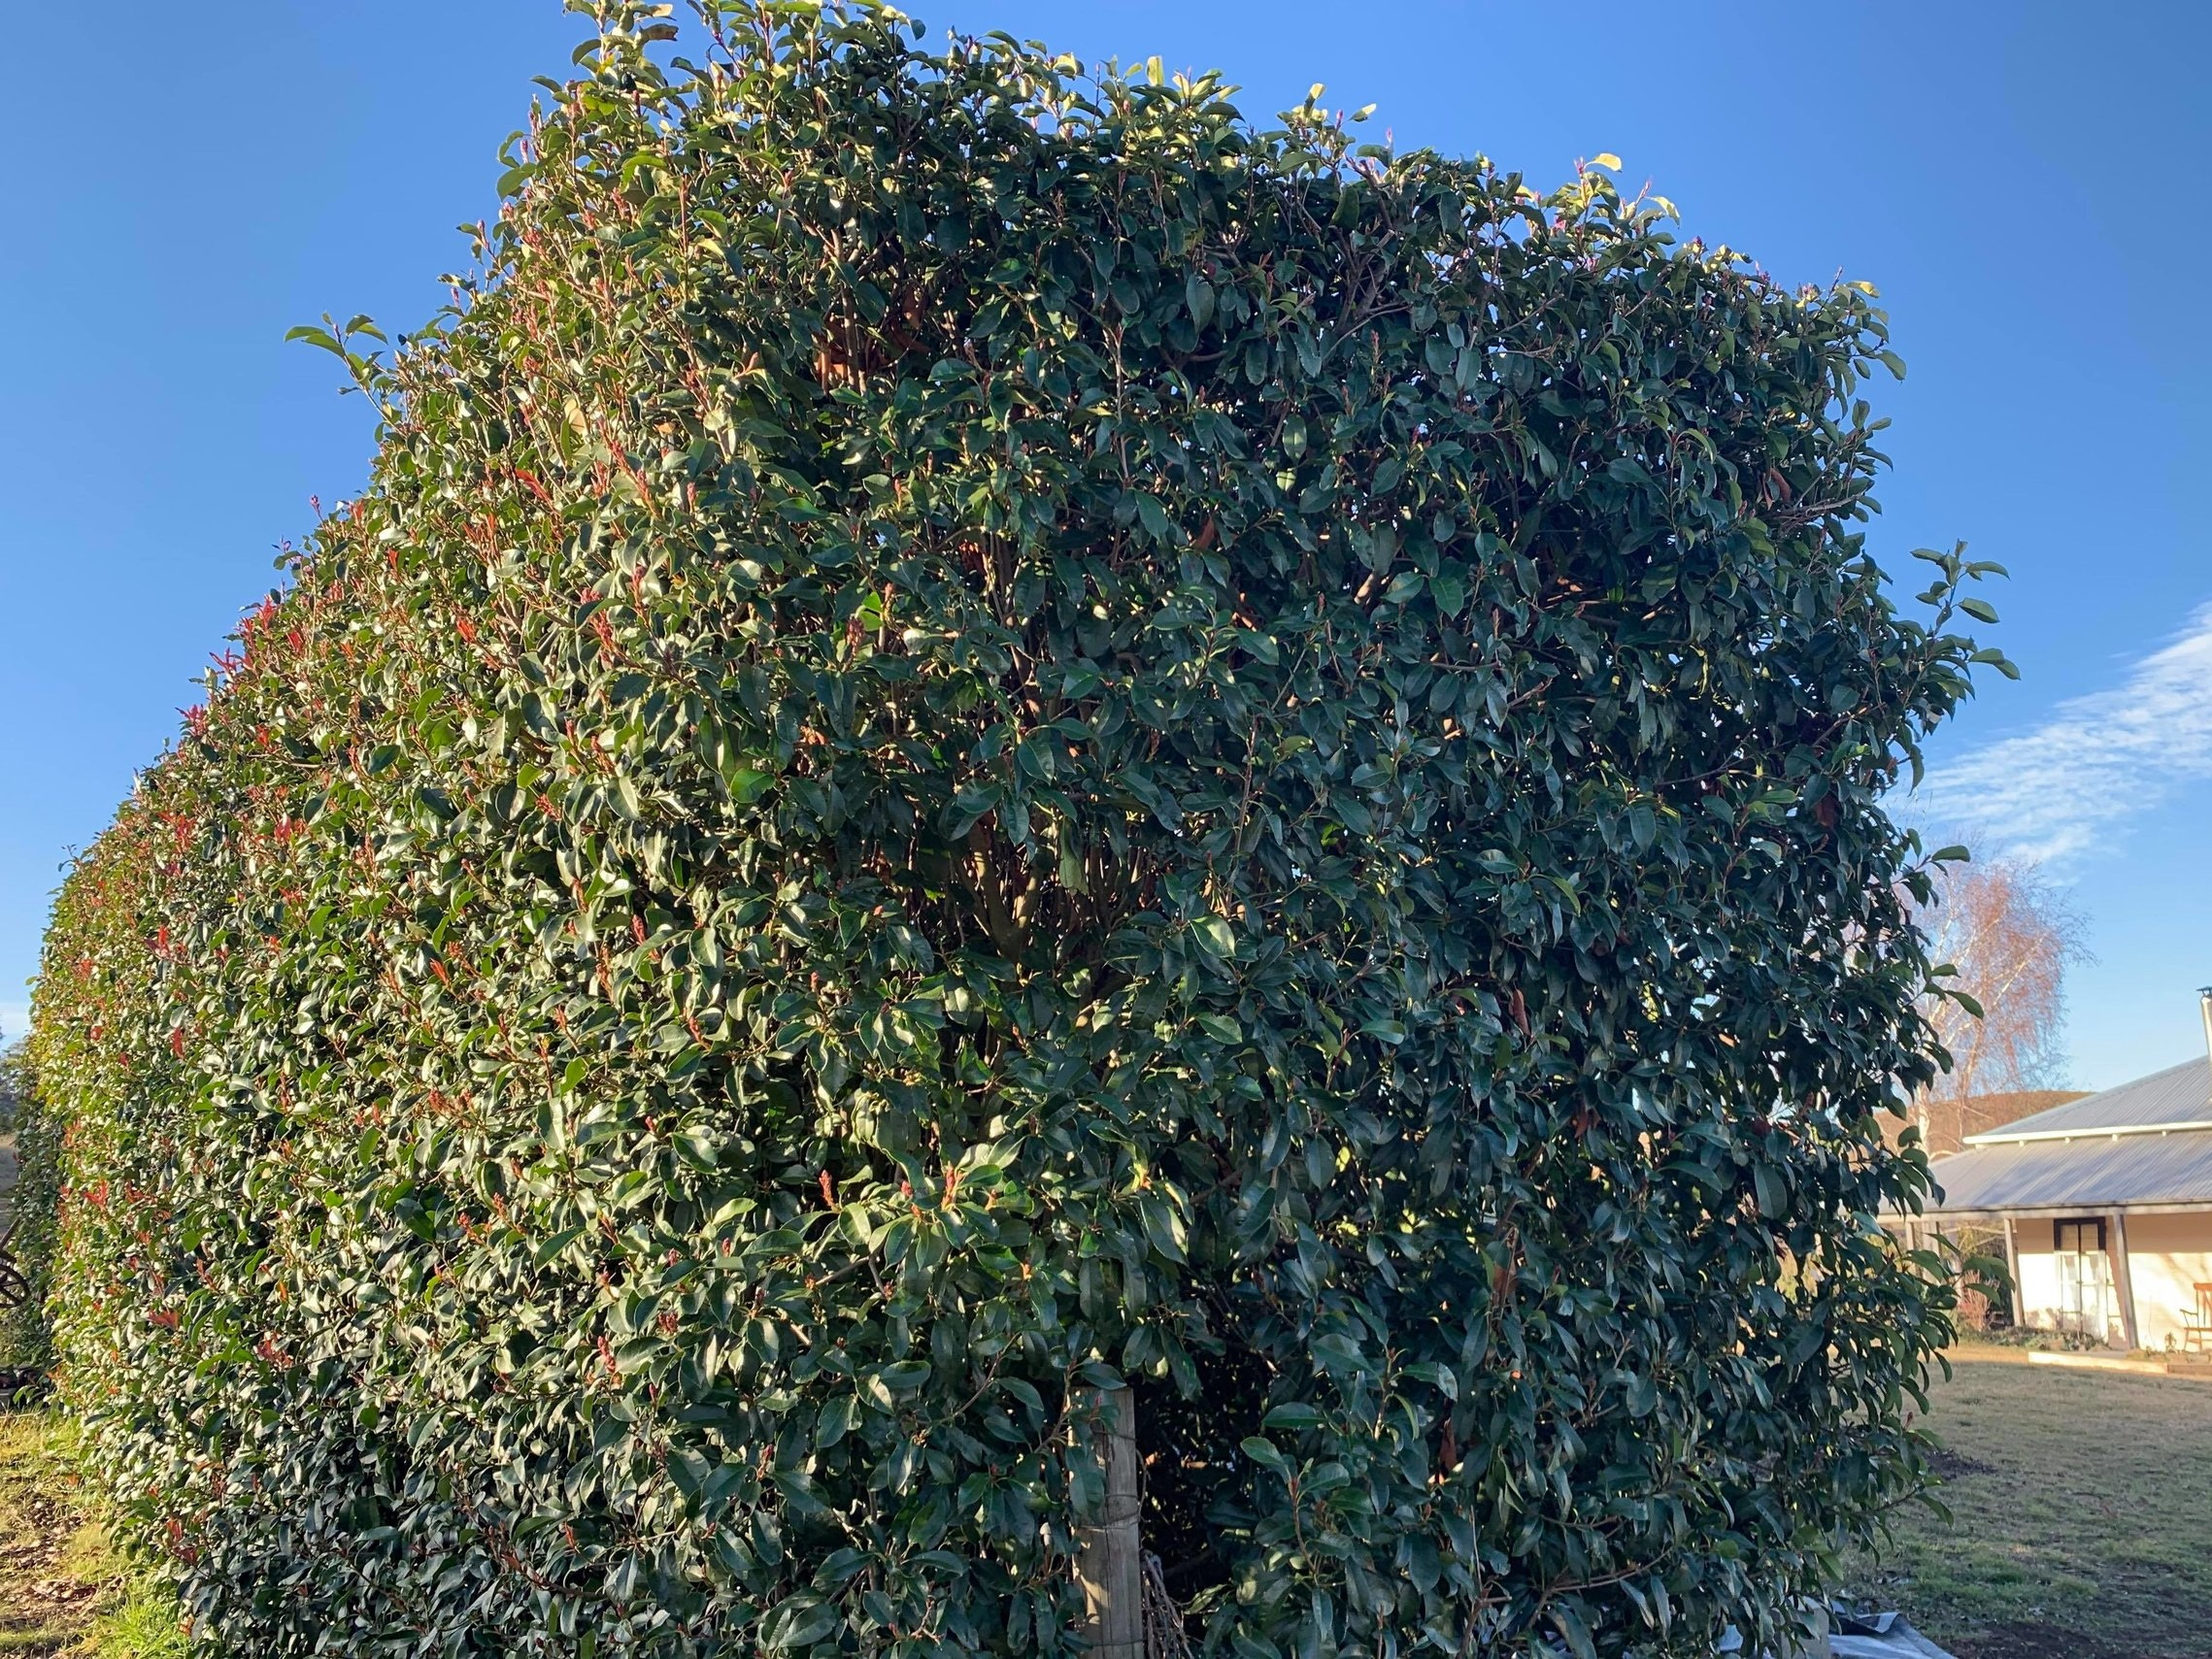 Growing to 6 metres the photinia provides an excellent barrier to dust and noise.